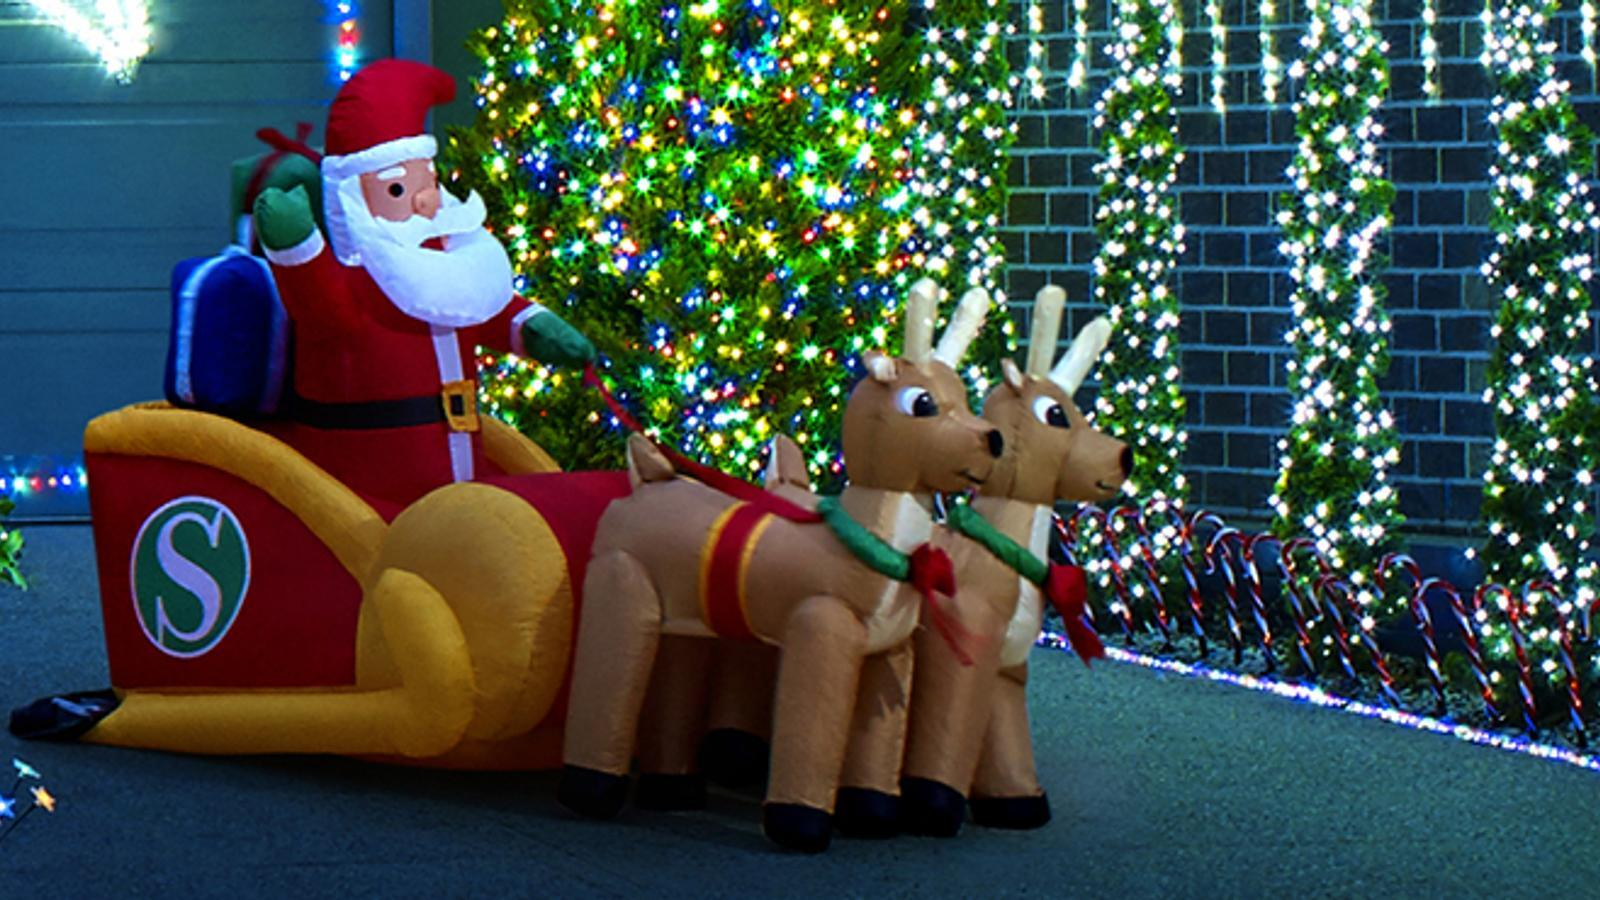 Christmas inflatables - Outdoor decorations - Santa